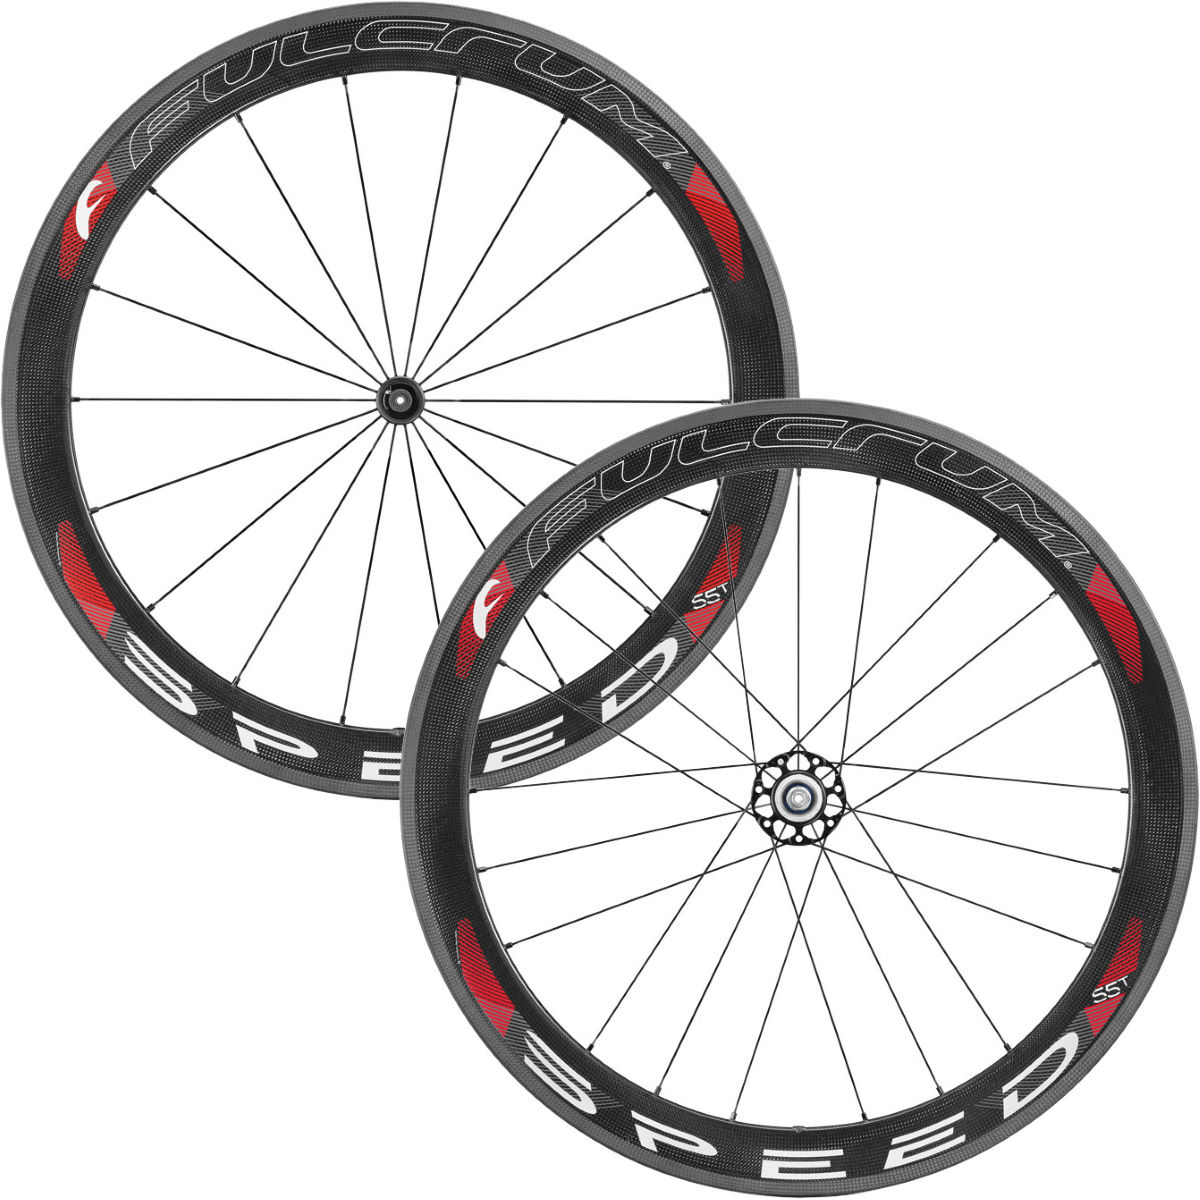 Paire de roues de route Fulcrum SPEED 55T Carbon (boyaux) - Carbone